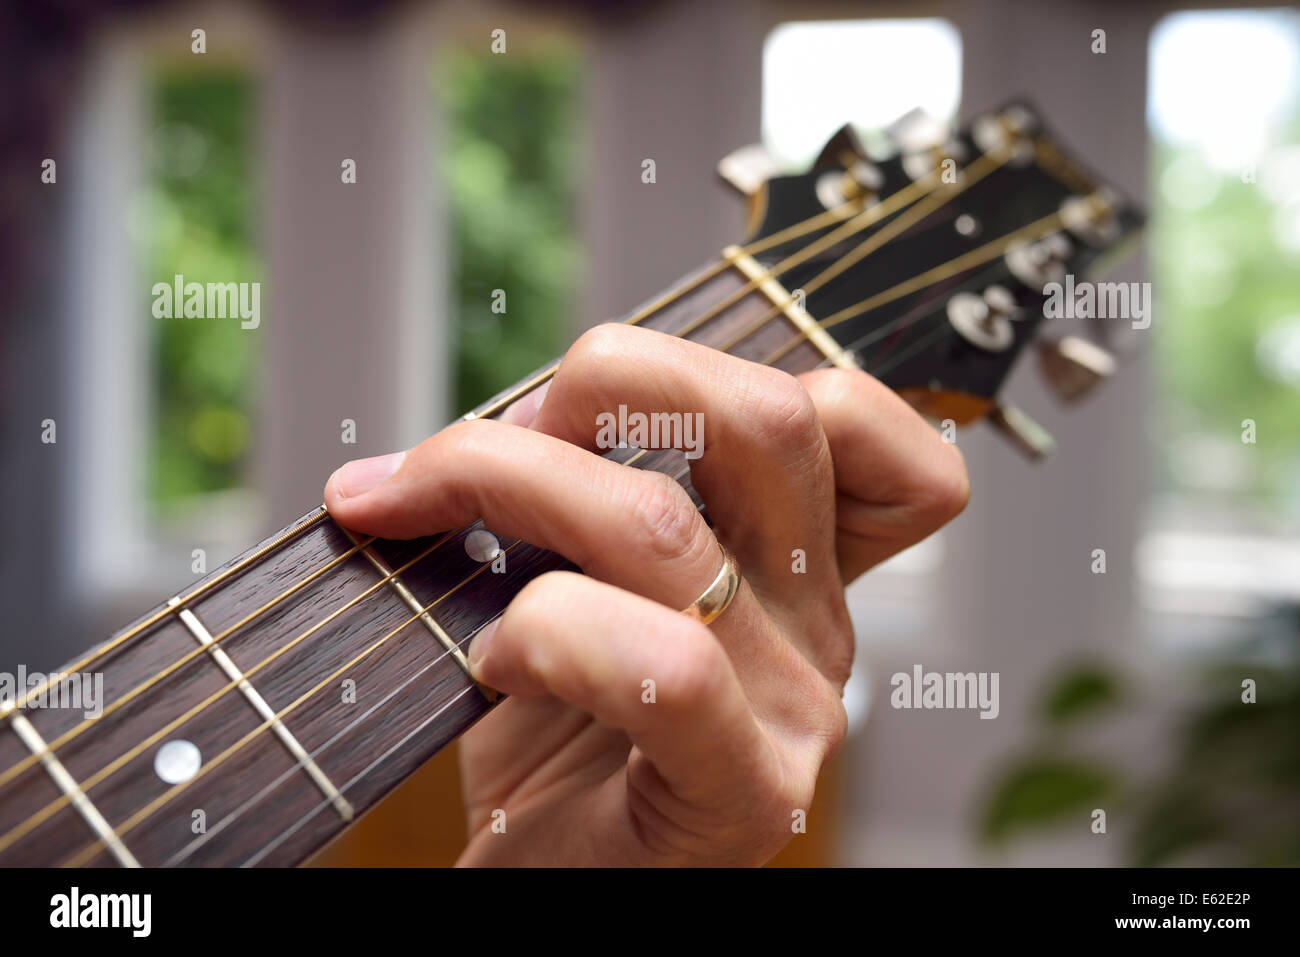 Close up of a man with hand on acoustic guitar showing chord fingering on the fretboard - Stock Image